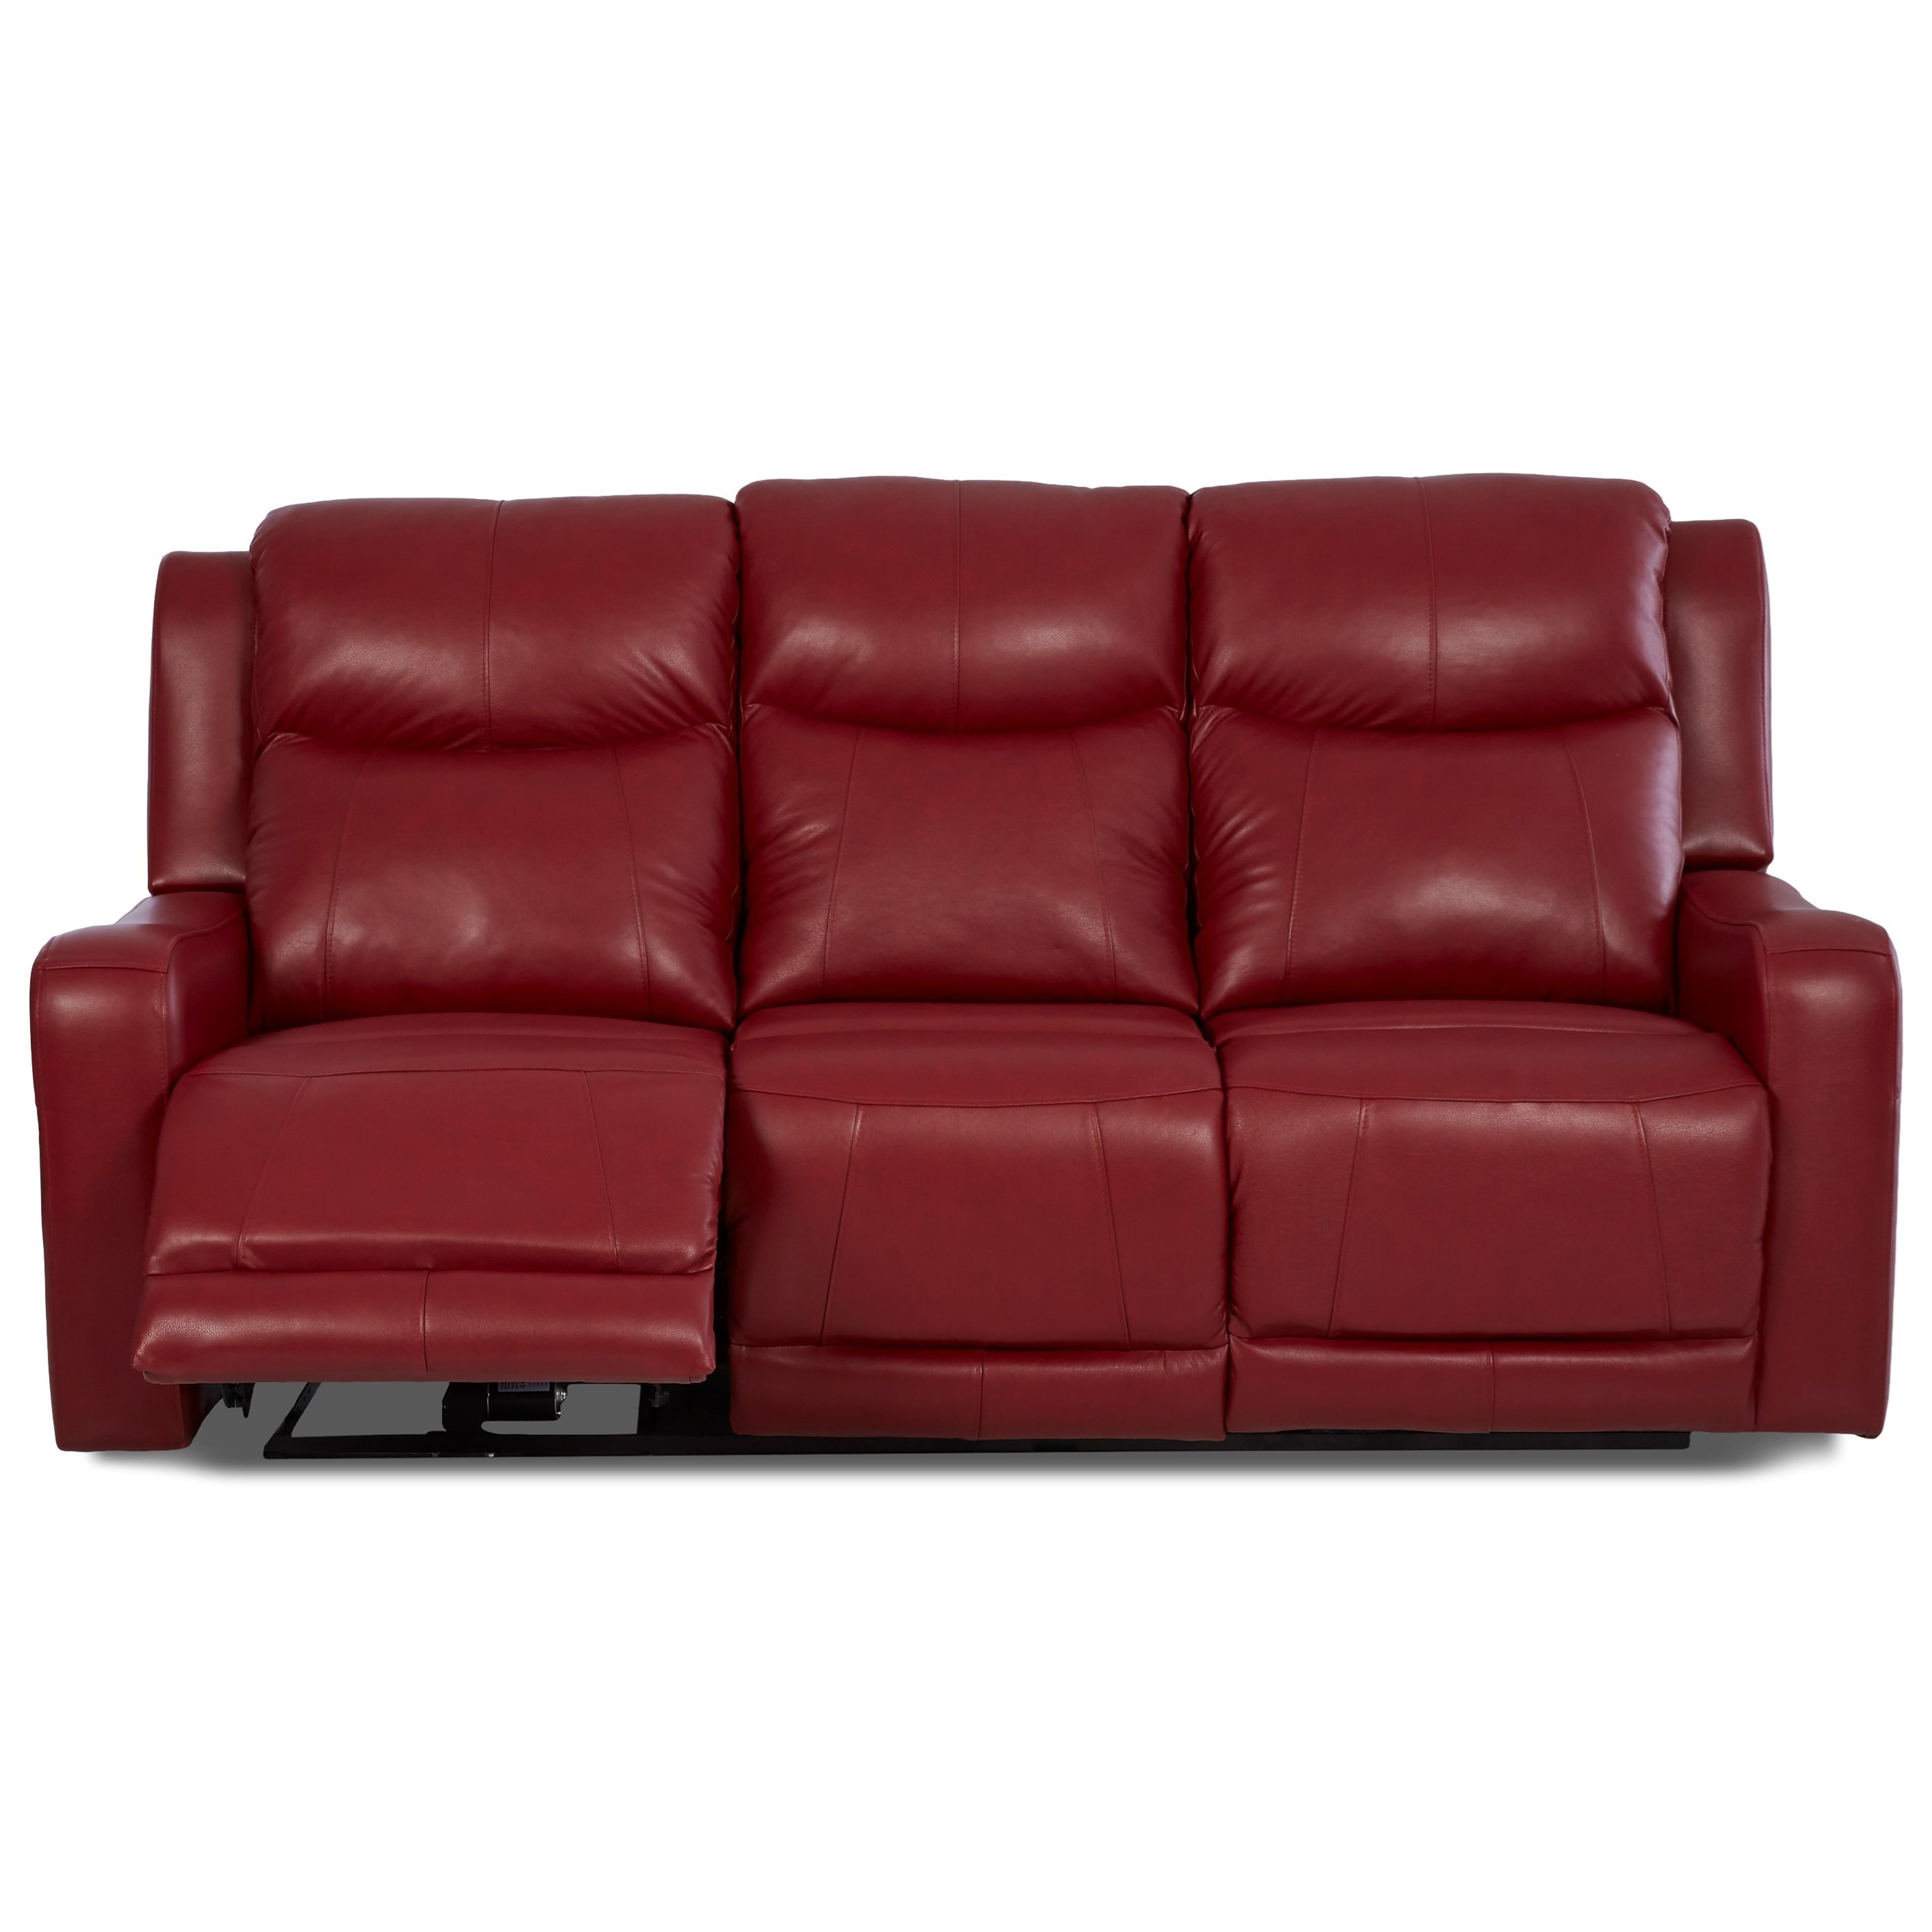 Power Reclining Sofa with Power Adjustable Headrest and Lumbar by